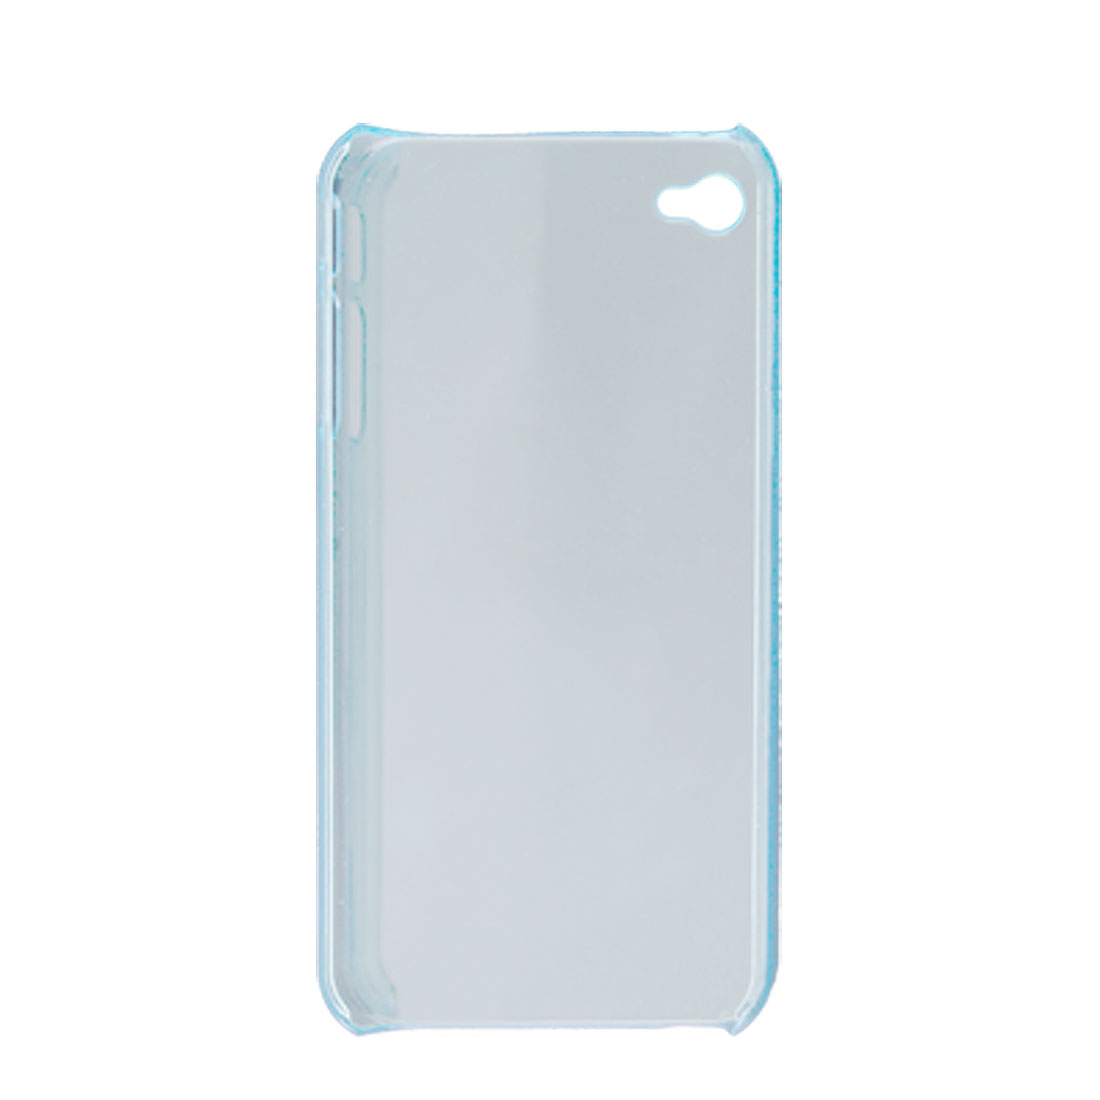 Clear Blue Plastic Back Shield Case for Apple iPhone 4G 4